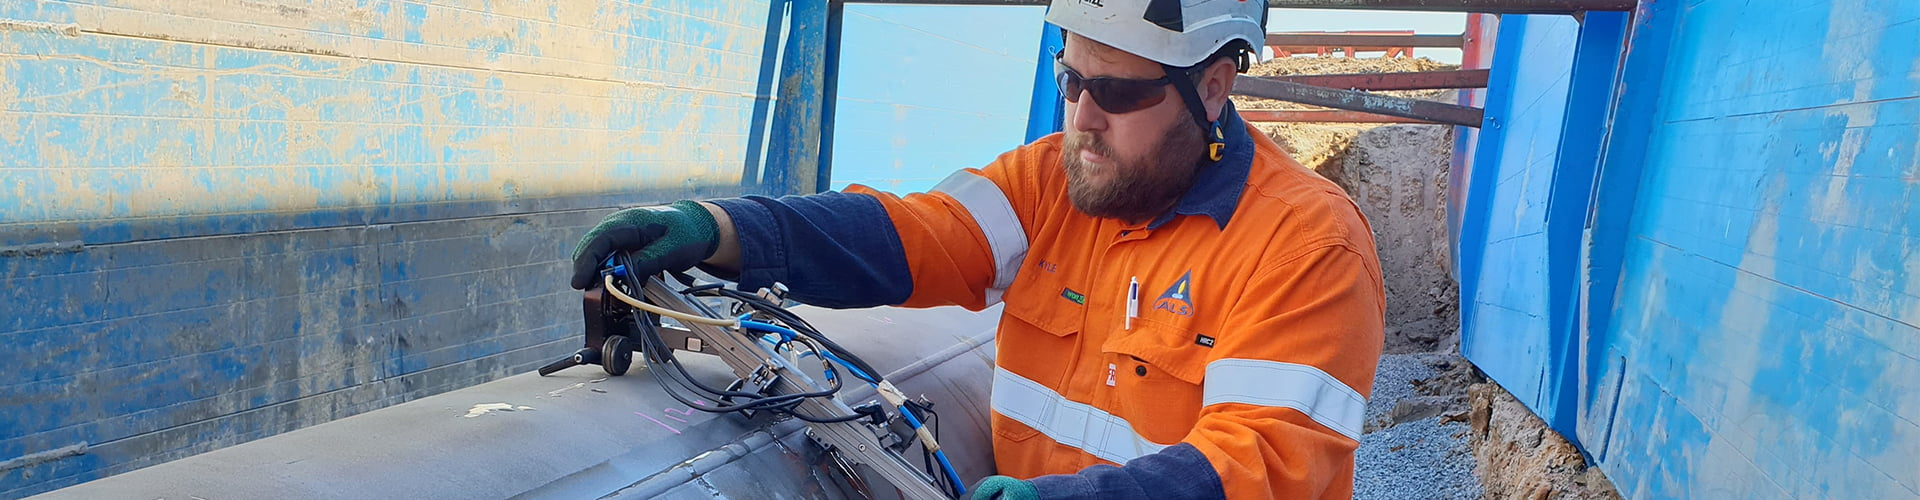 ALS technician performing a Phased Array Ultrasonic Testing (PAUT) on industrial piping